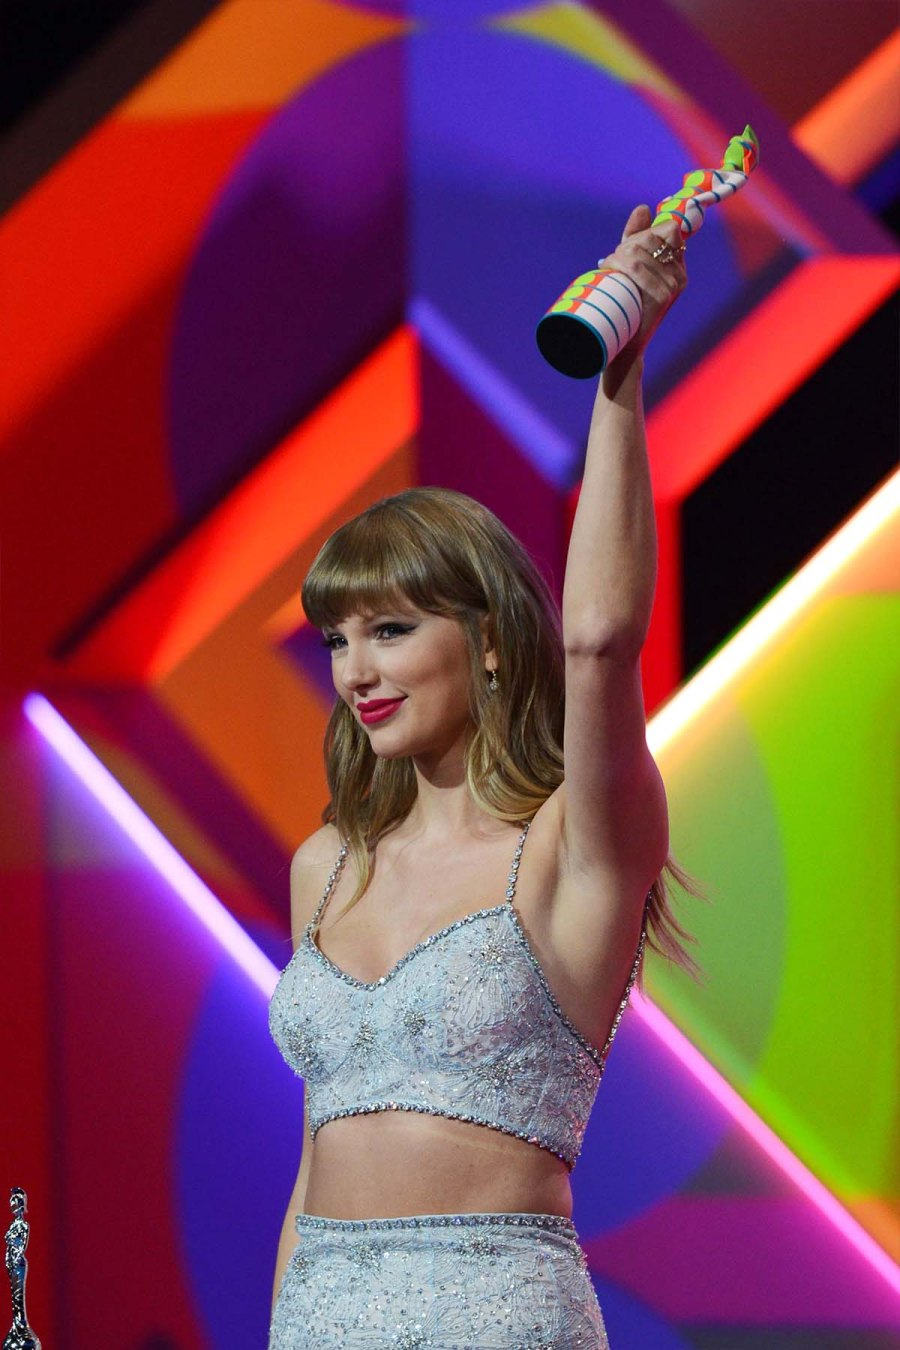 Taylor Swifts Sparkly Crop Top Stole Show 2021 BRIT Awards